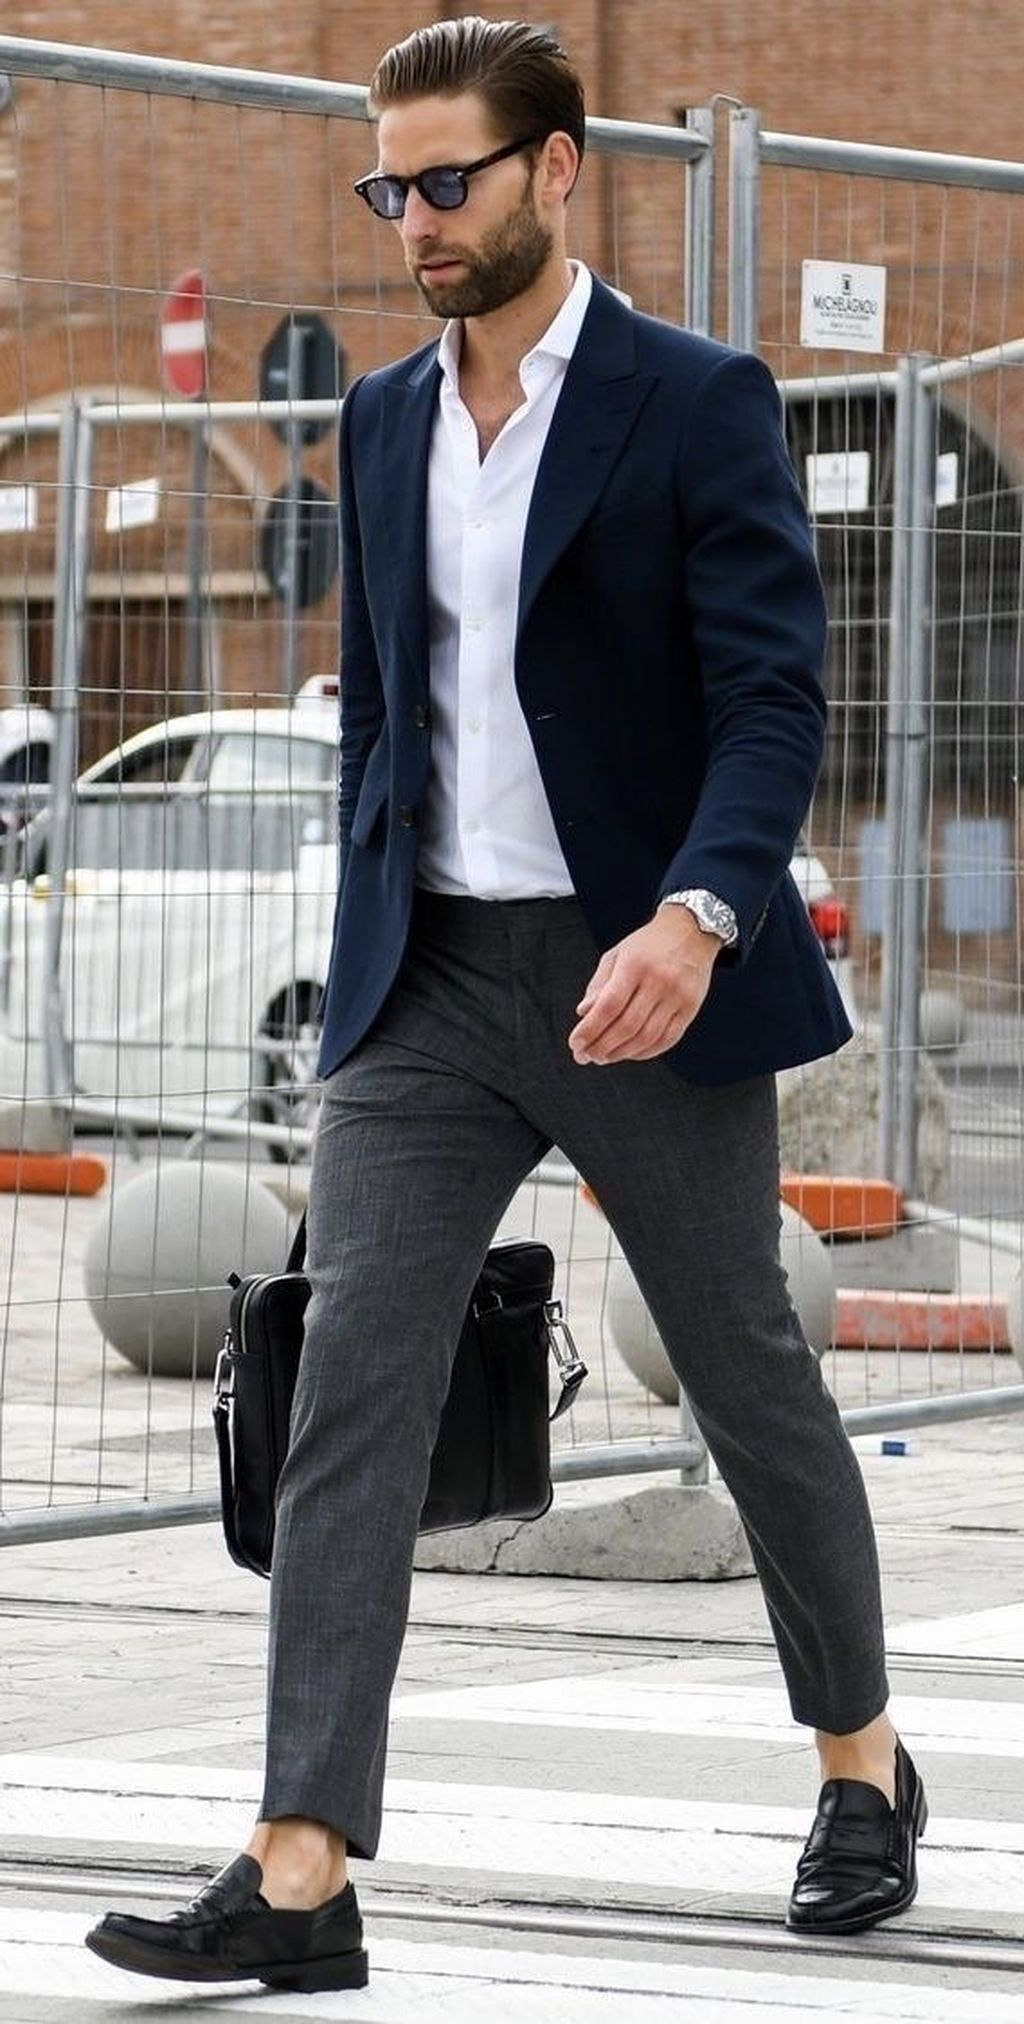 46 Inspiring Work Outfits For Men My Work Outfits Blog Mens Fashion Suits Stylish Mens Outfits Smart Casual Outfit [ 2024 x 1024 Pixel ]